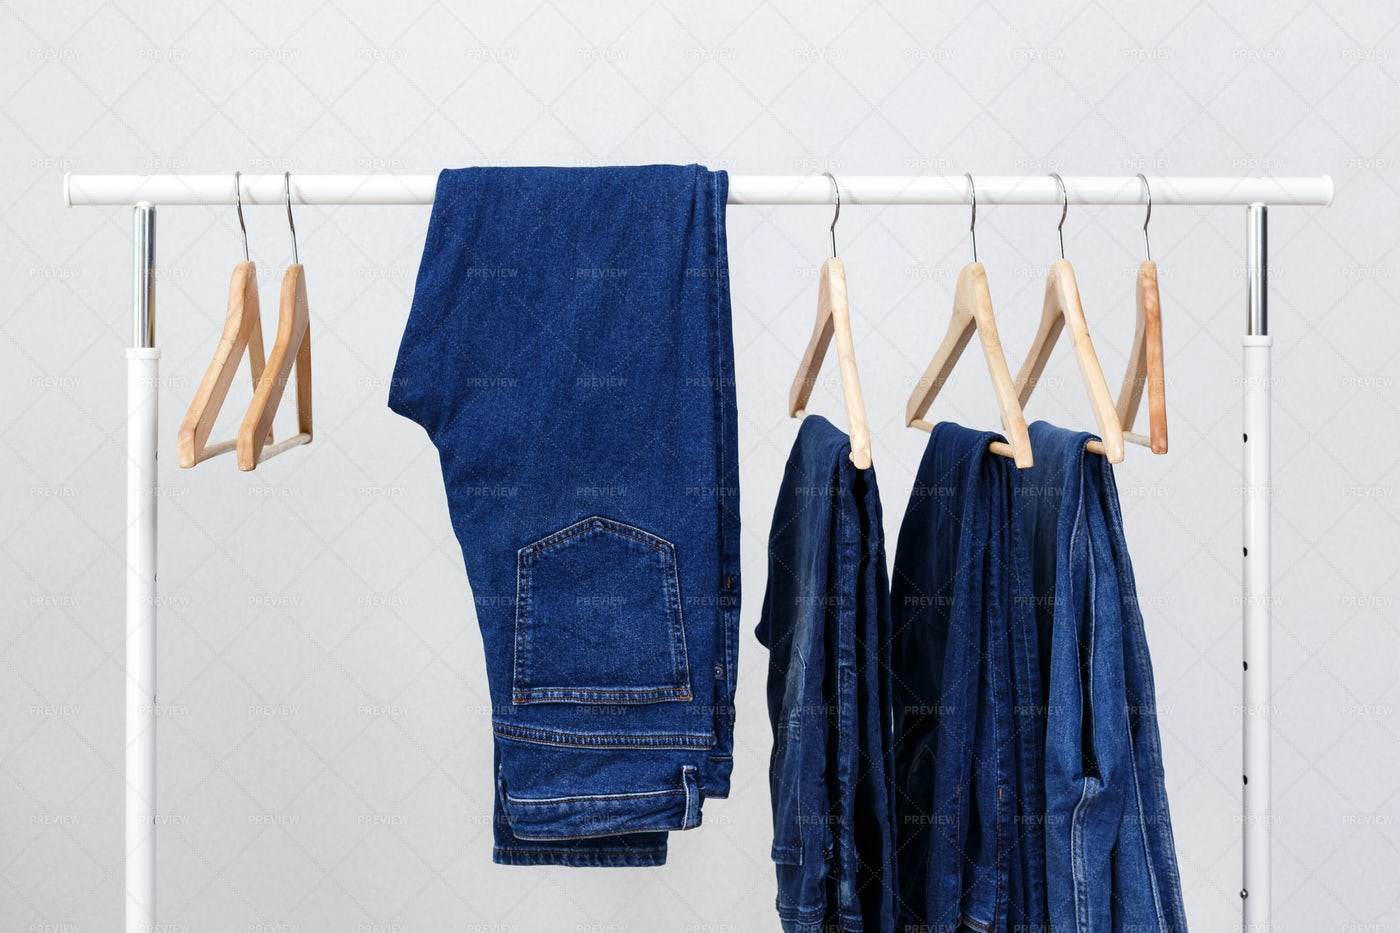 Metal Rack With Jeans: Stock Photos